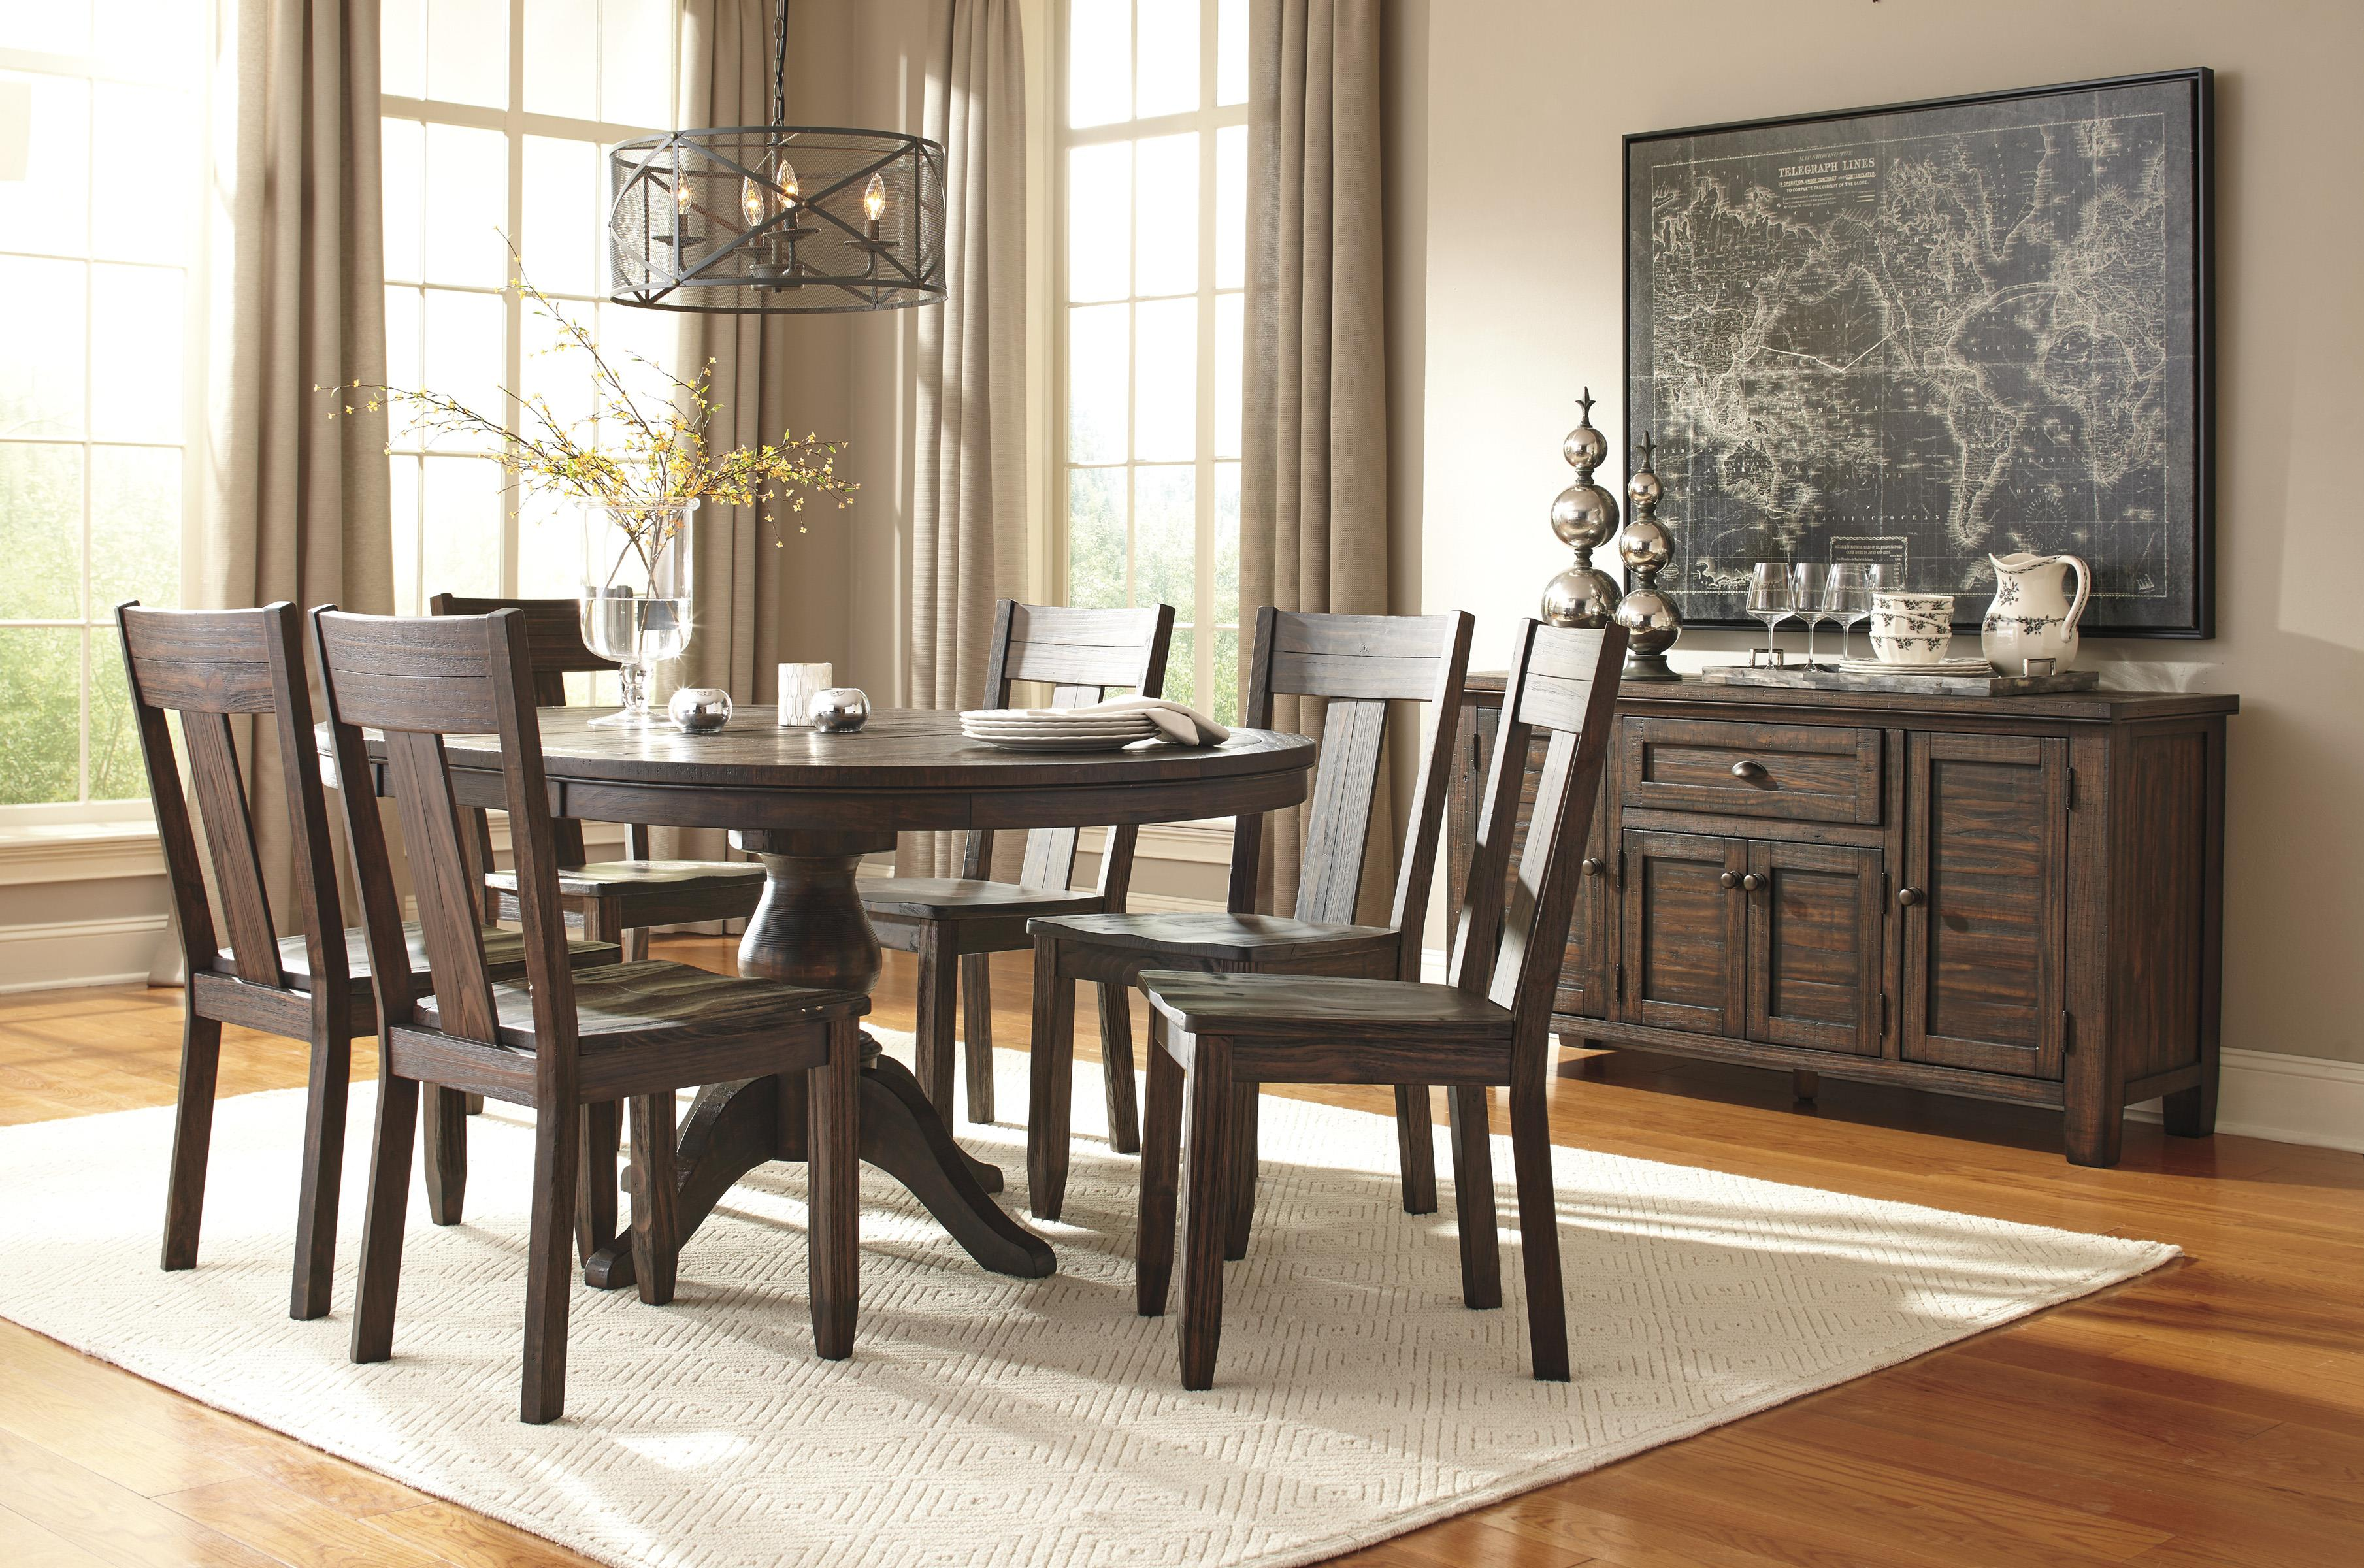 7-Piece Oval Dining Table Set & 7-Piece Oval Dining Table Set with Wood Seat Side Chairs by ...